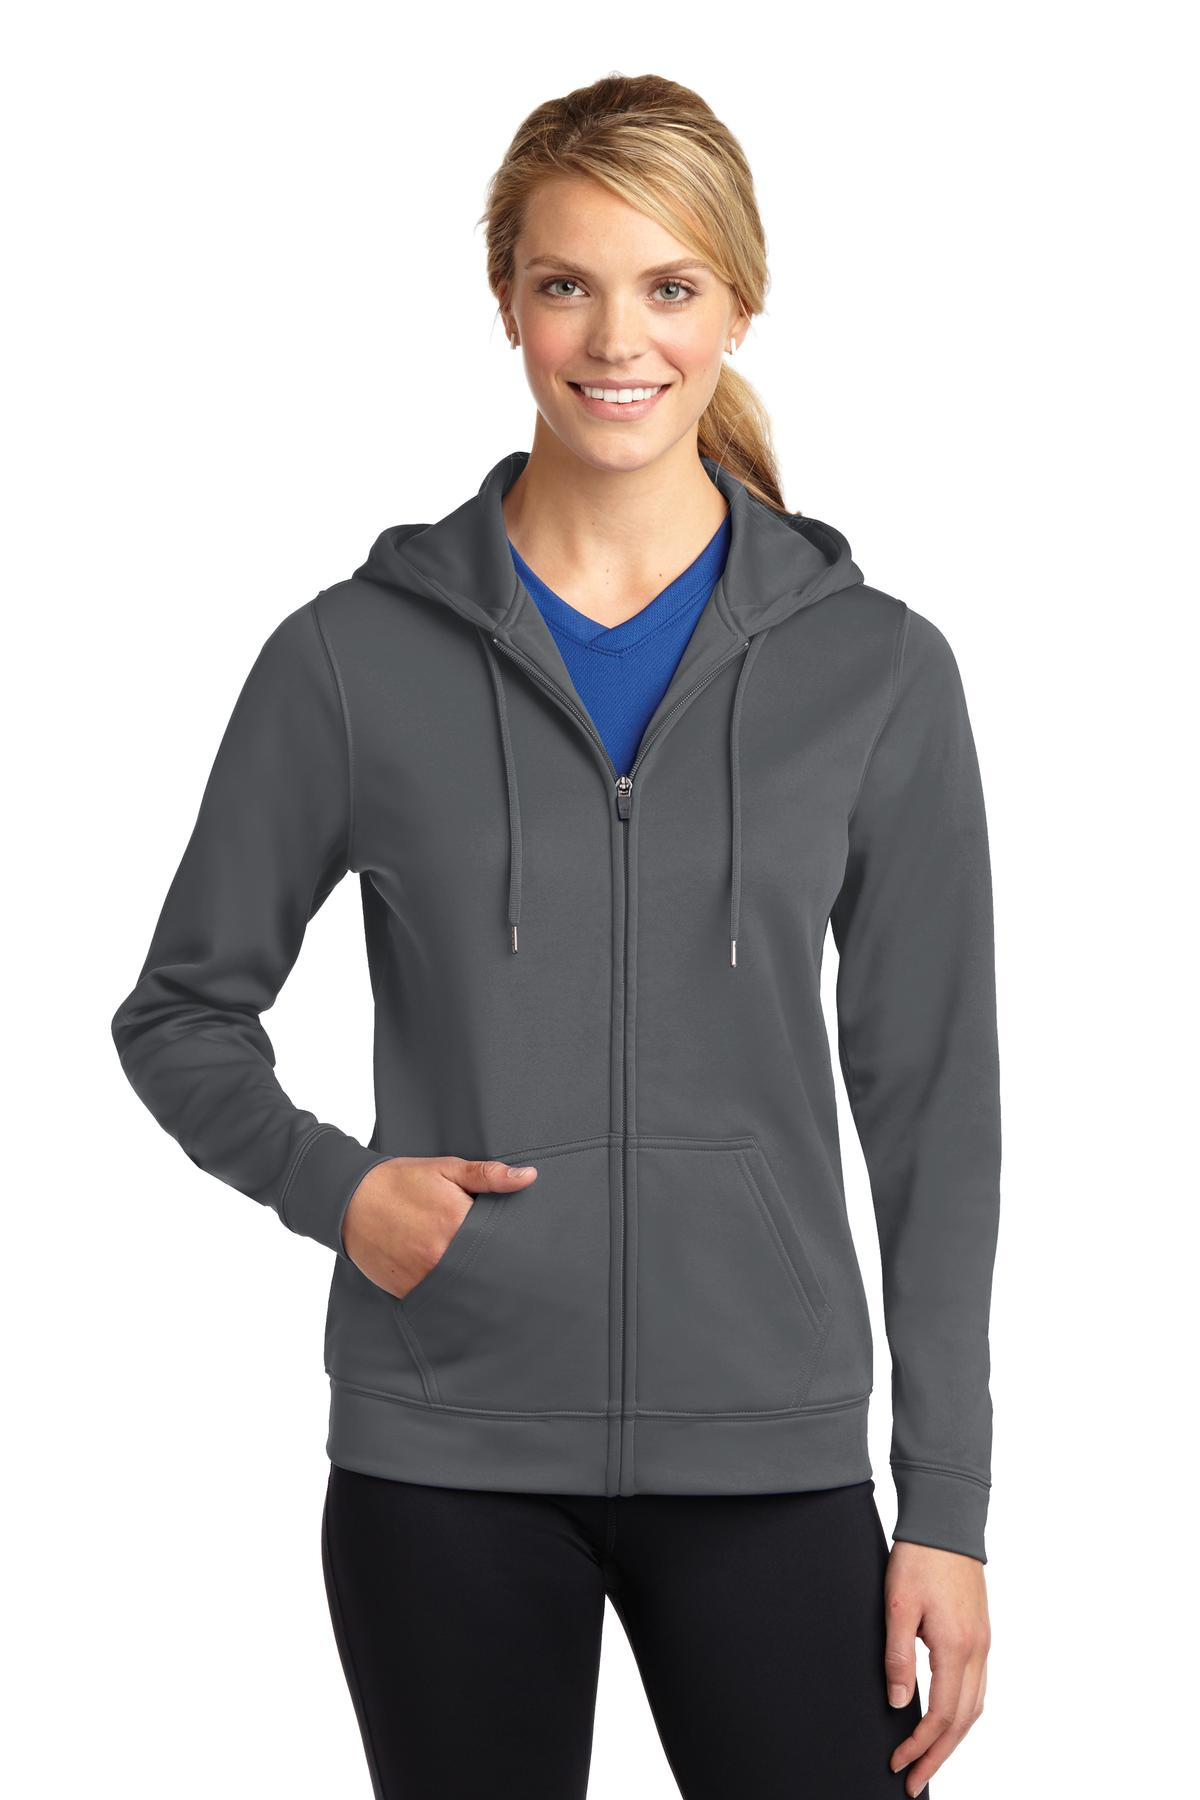 Sport-Tek ®  Ladies Sport-Wick ®  Fleece Full-Zip Hooded Jacket. LST238 - Dark Smoke Grey